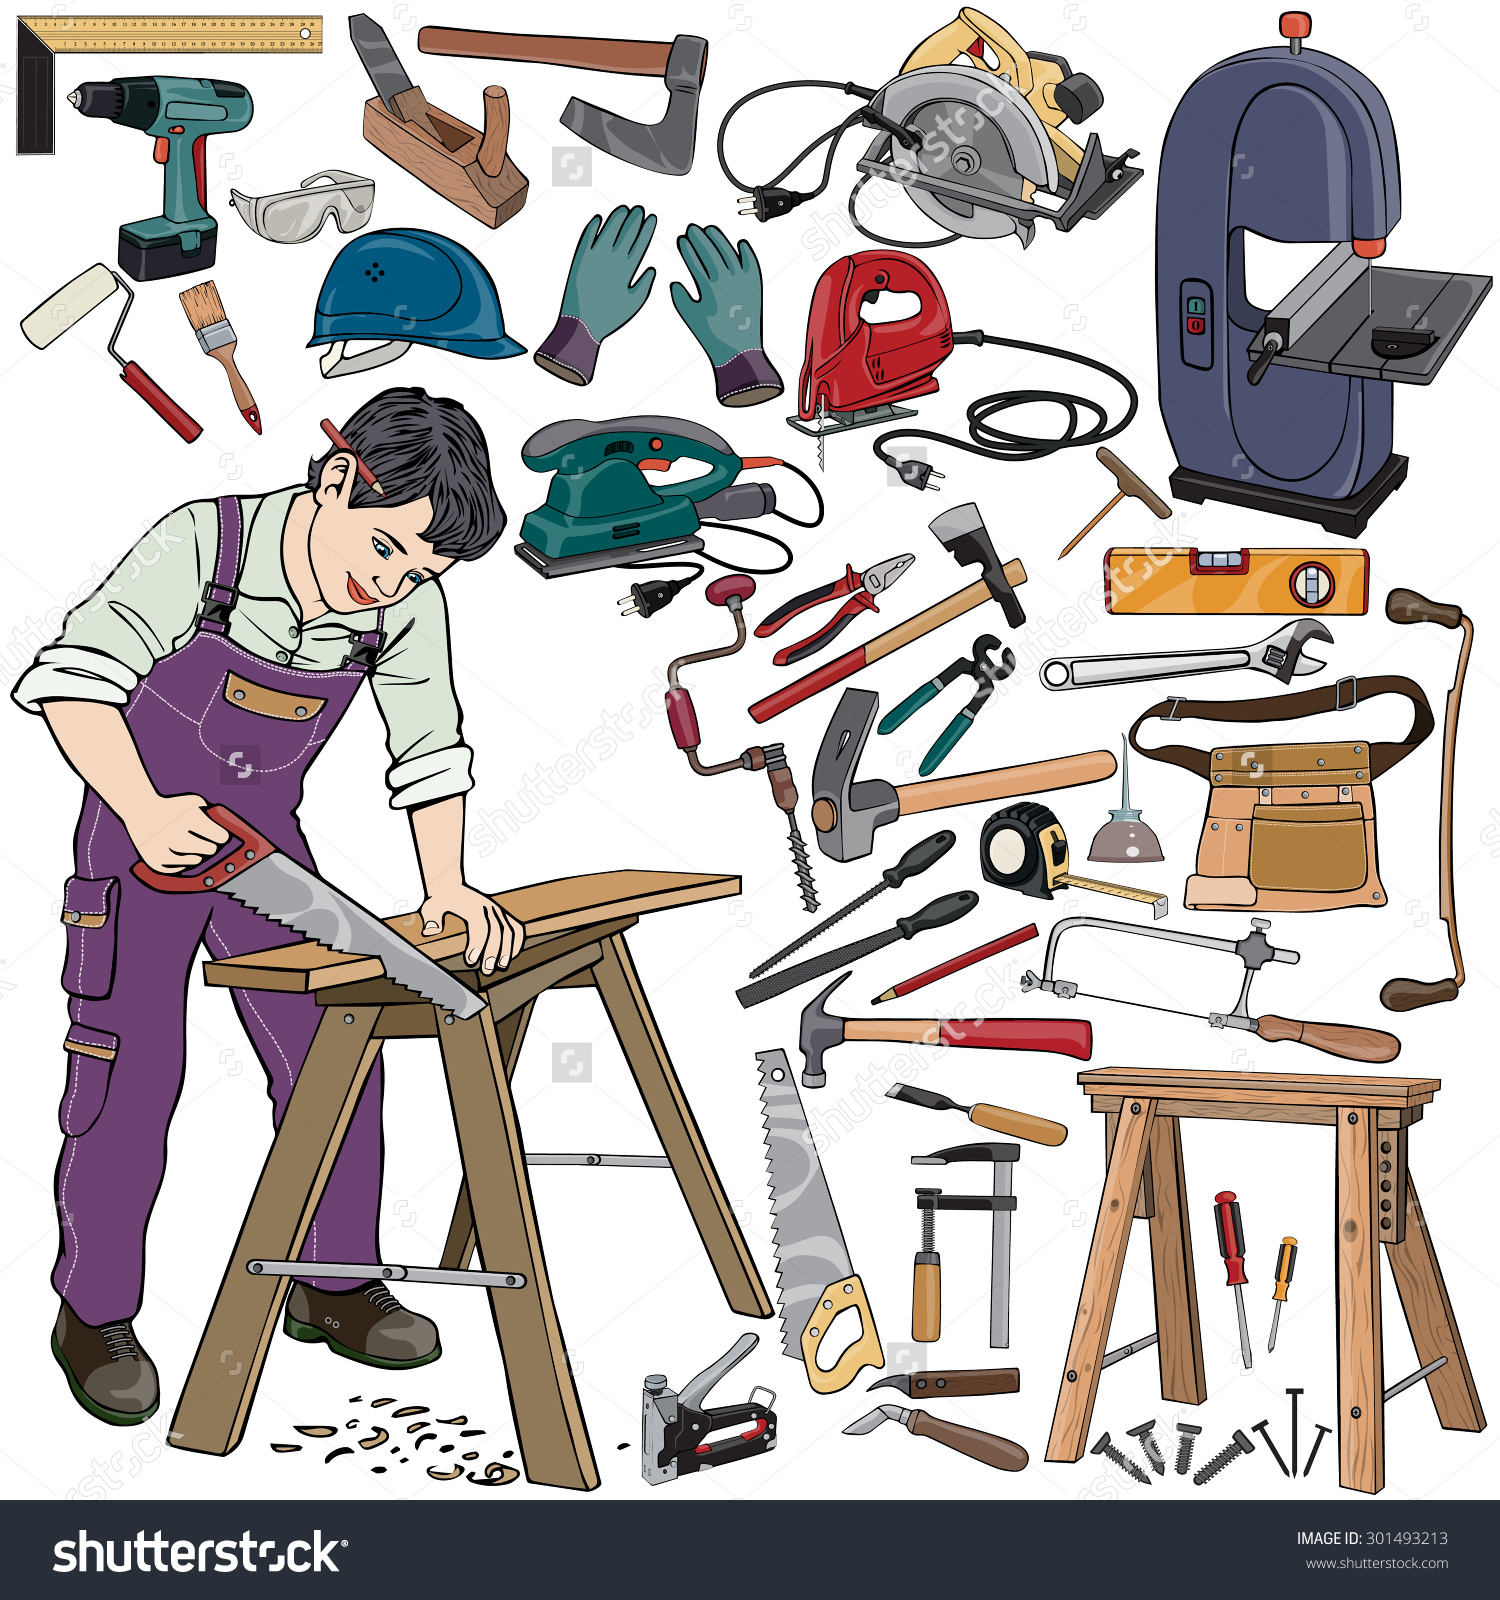 Carpenter images image group. Carpentry clipart equipment